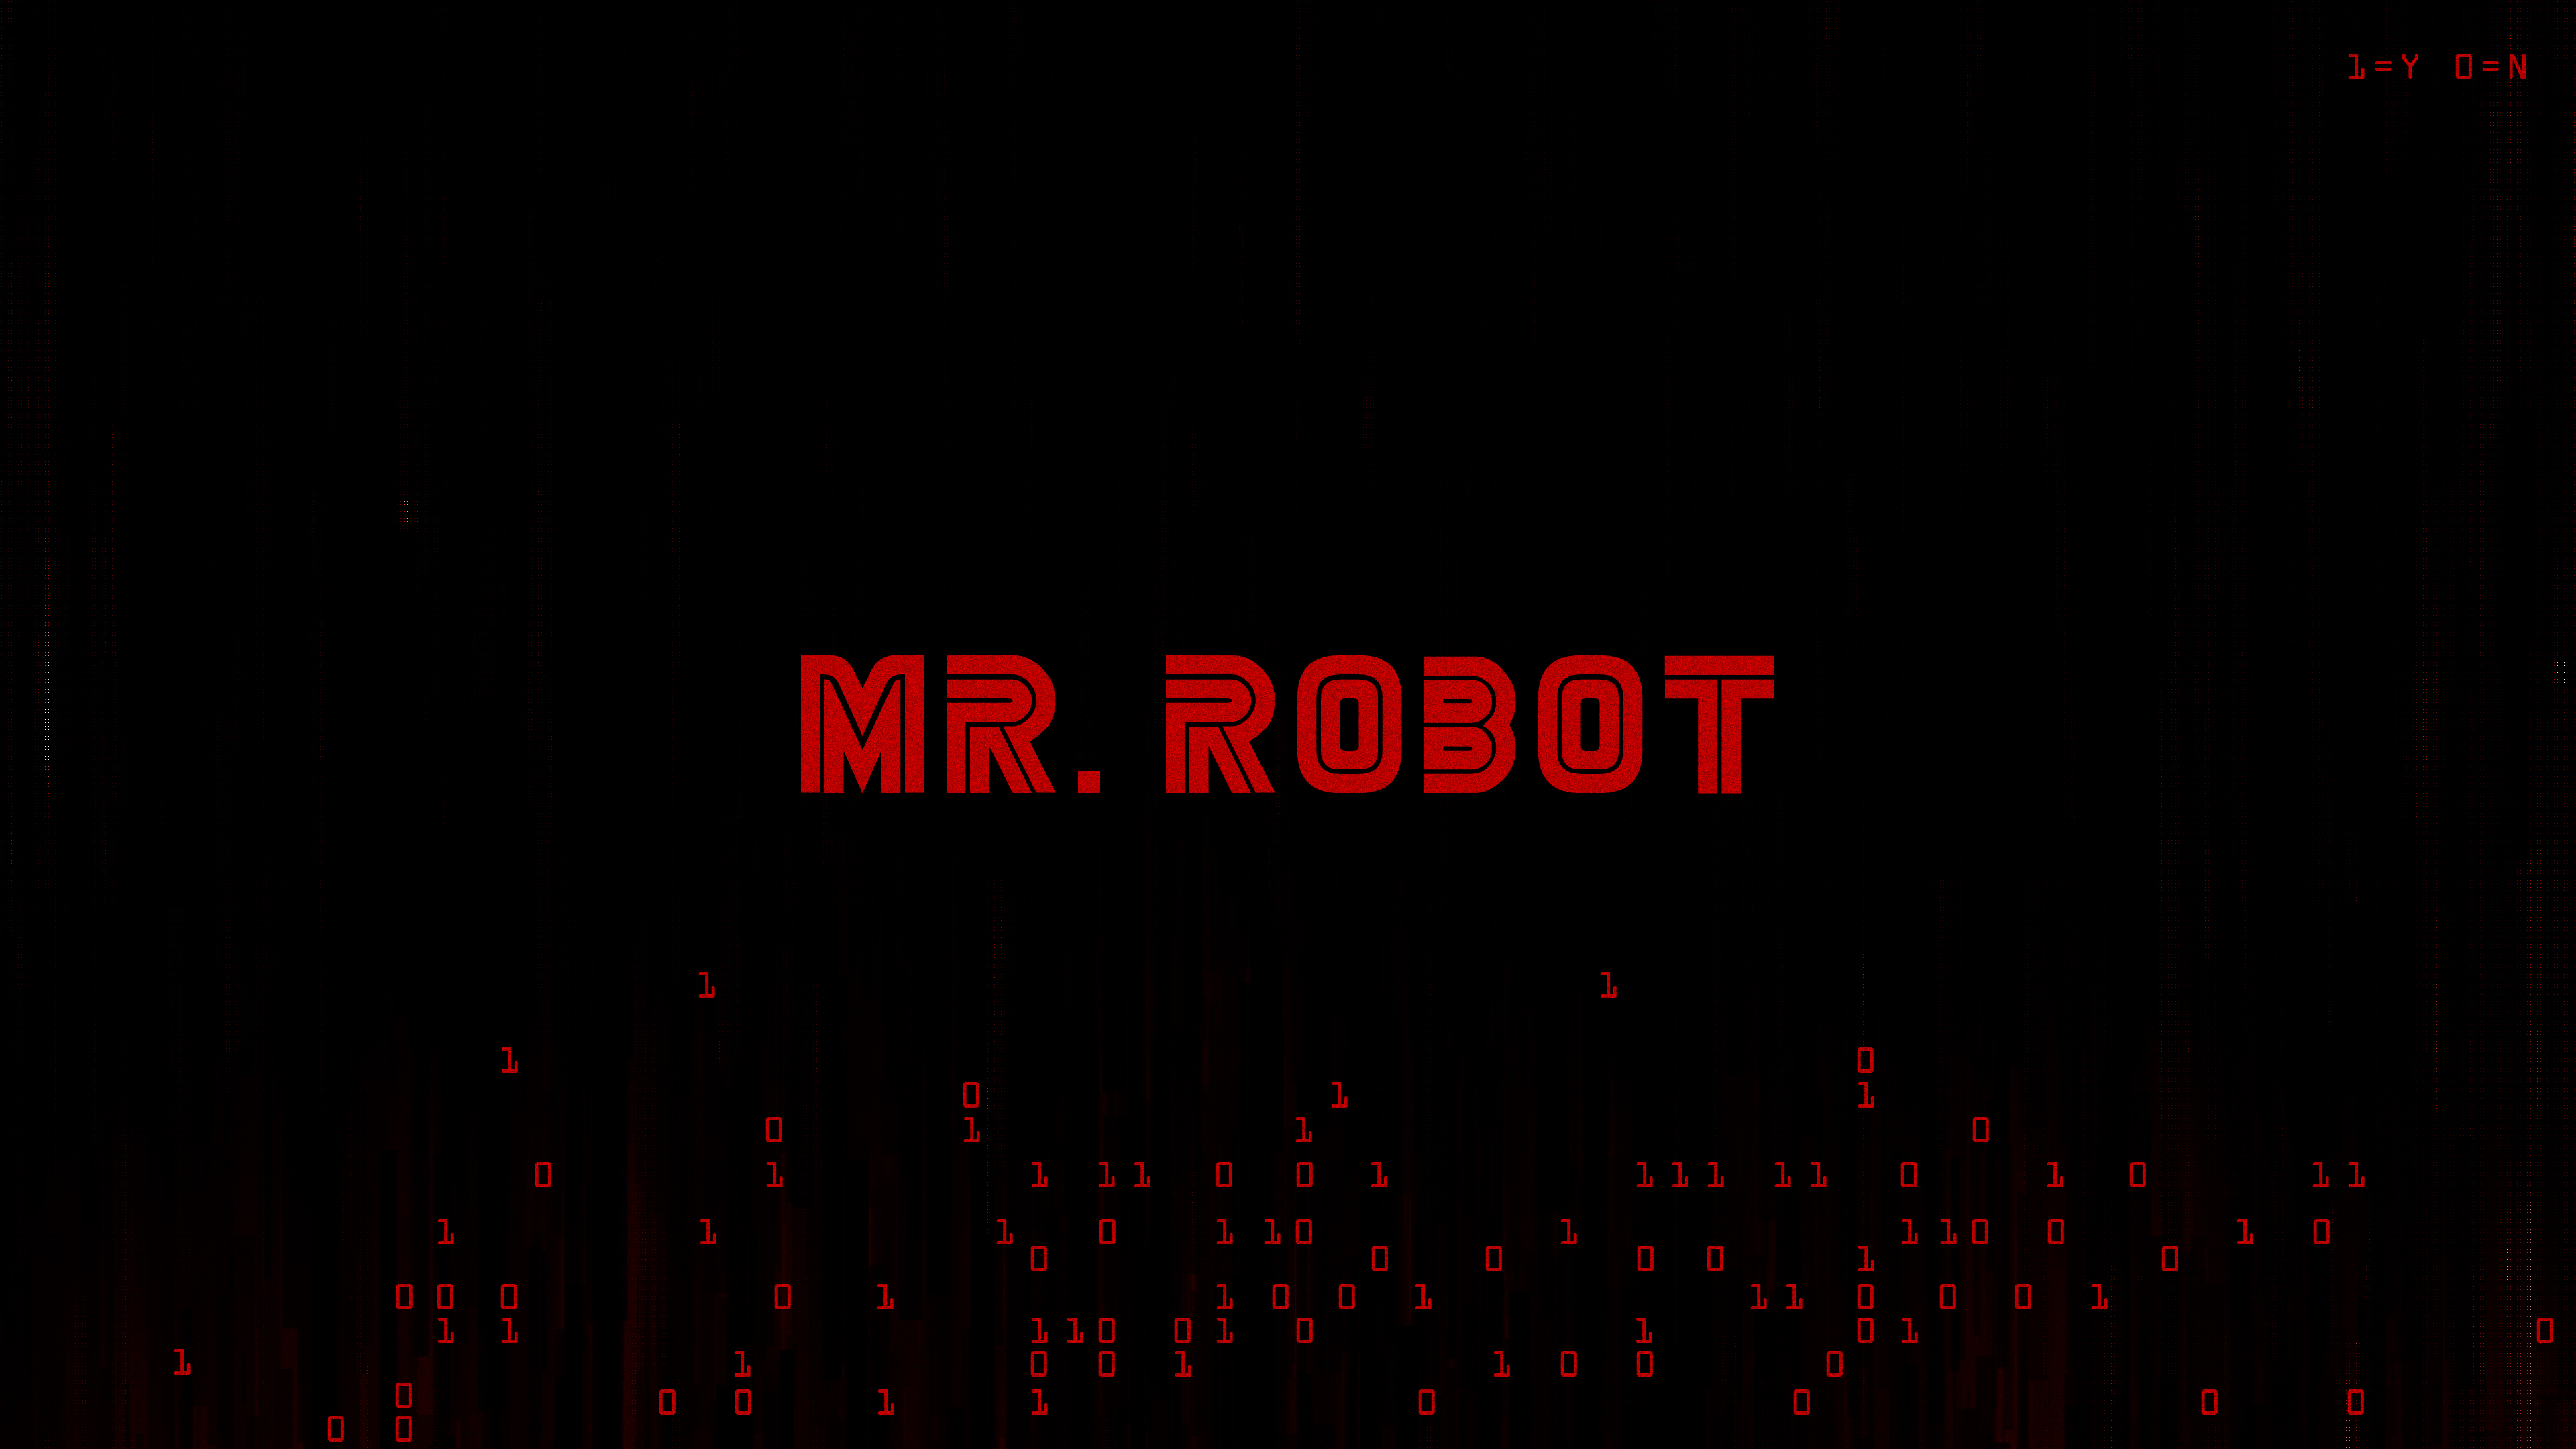 Mr robot logo 4k 2018 hd tv shows 4k wallpapers images - Tv series wallpaper 4k ...